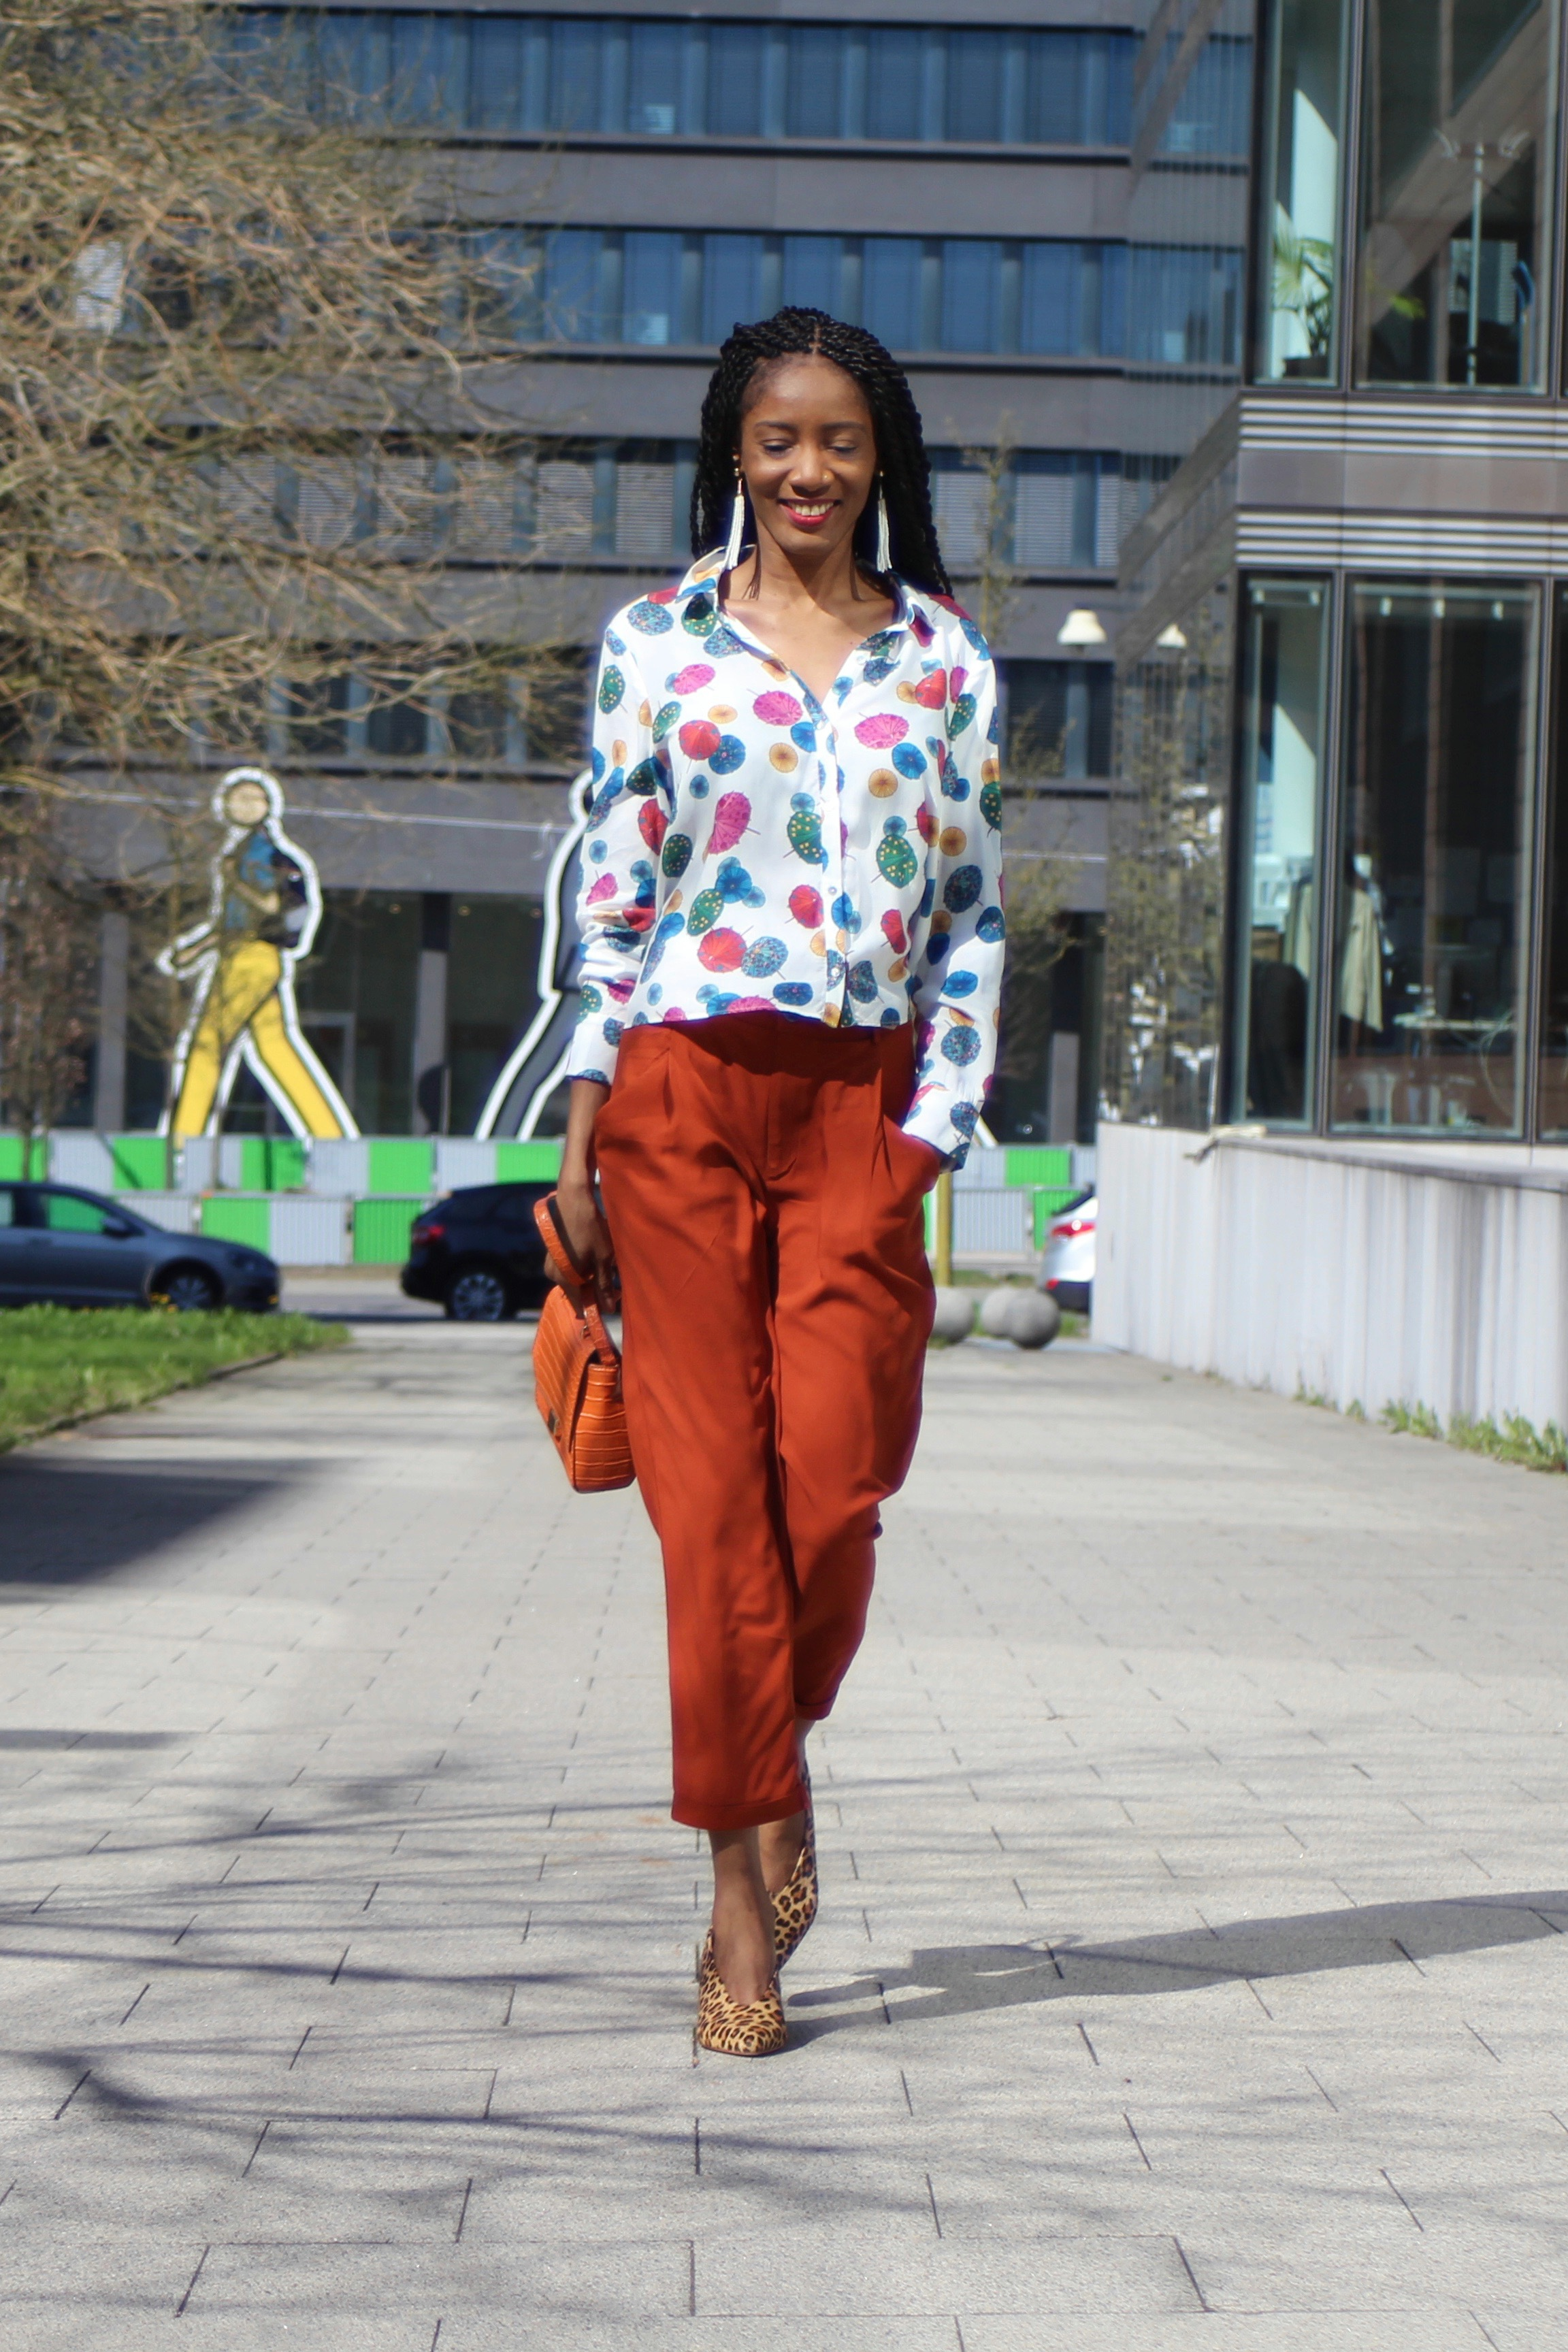 spring outfit inspiration 2107